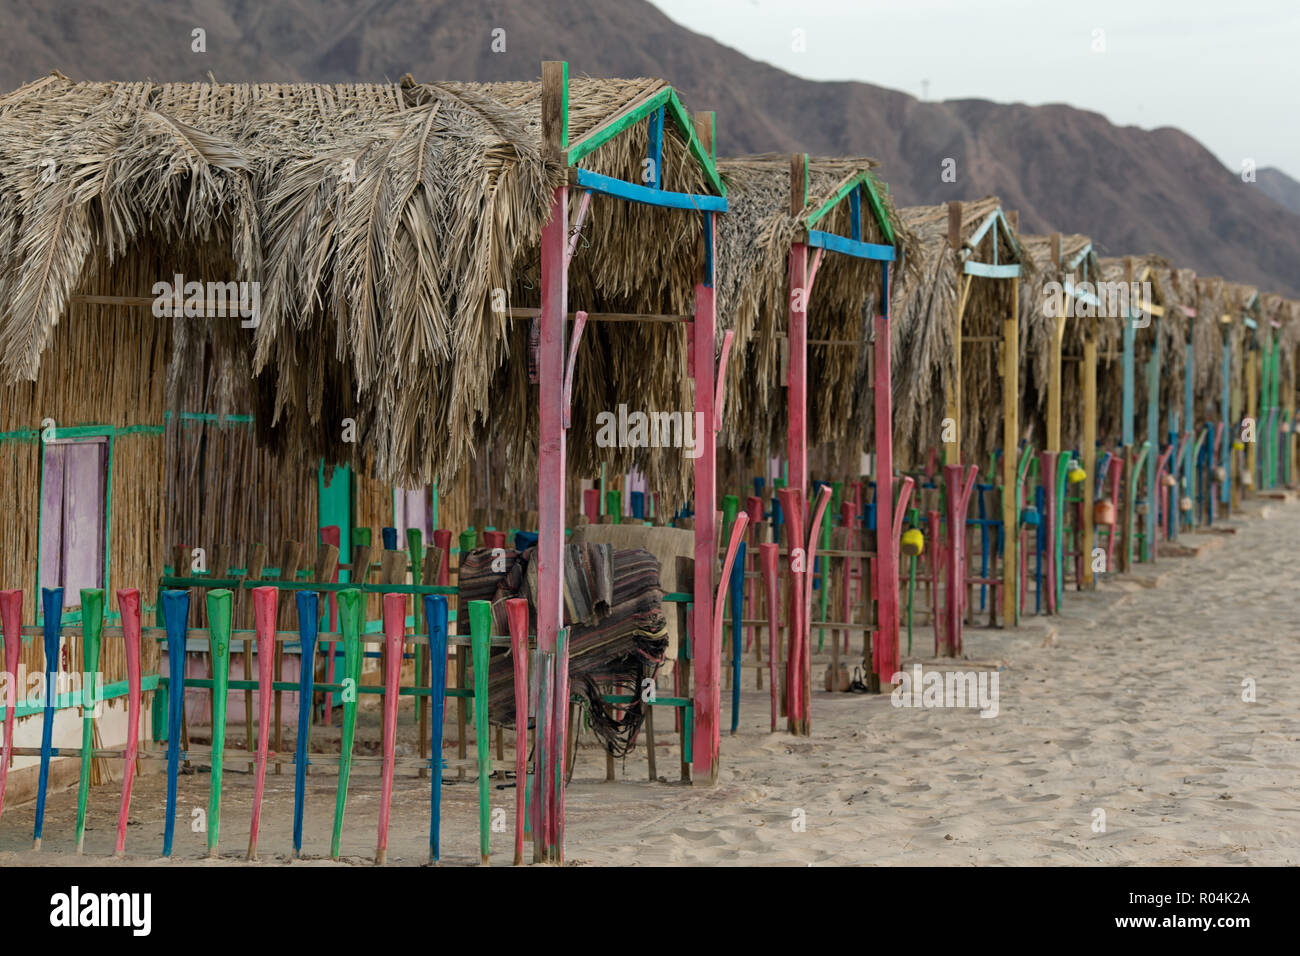 Bedouin Huts in Sondos Camp. Nuweiba. Egypt - Stock Image